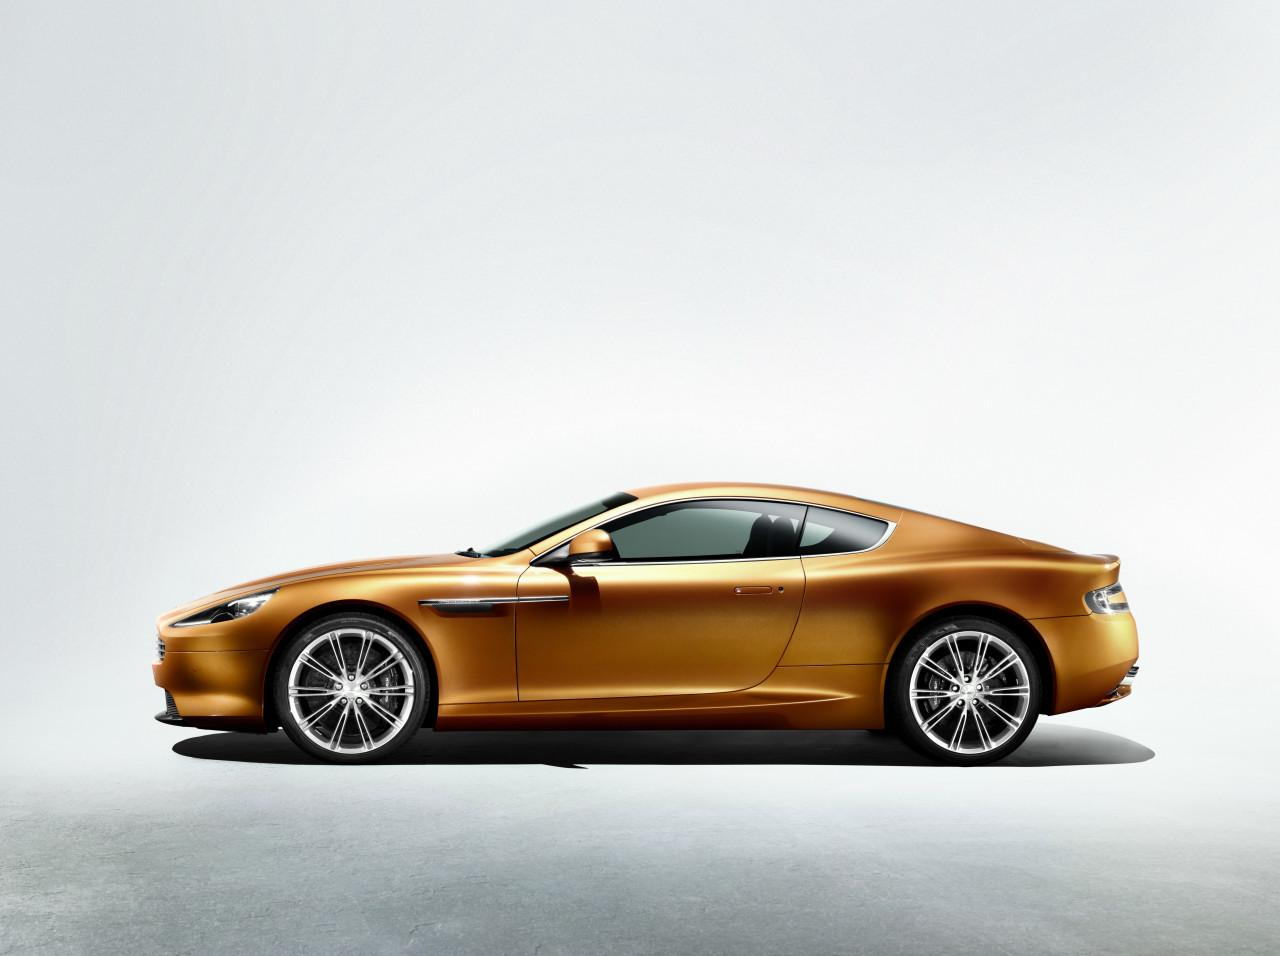 Aston Martin Virage in only